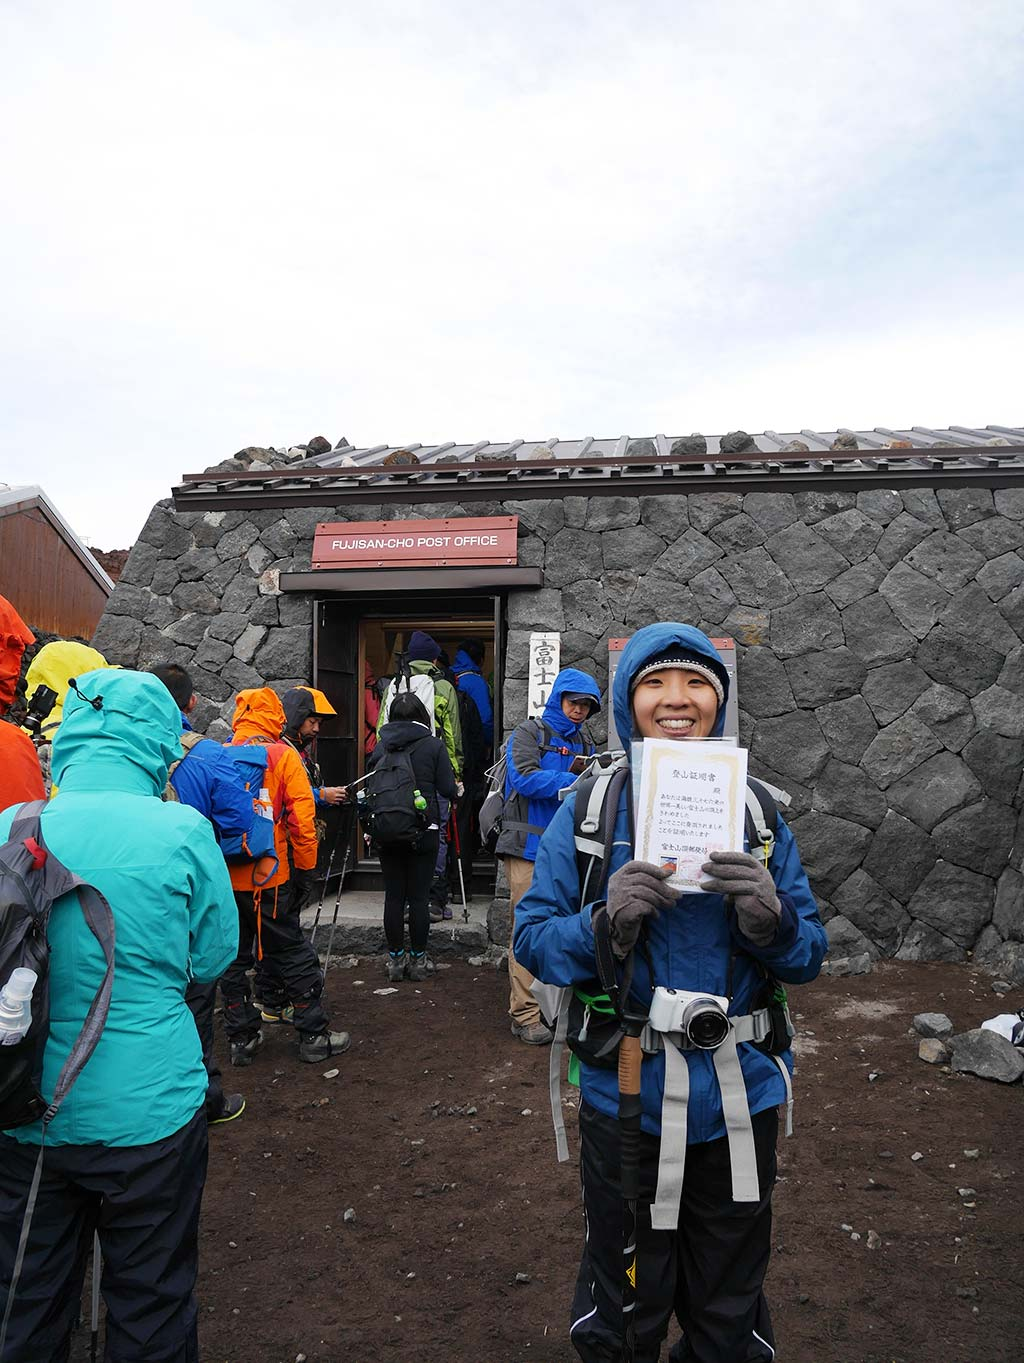 Getting hiking certificate at post office on Mount Fuji summit, Japan | Laugh Travel Eat